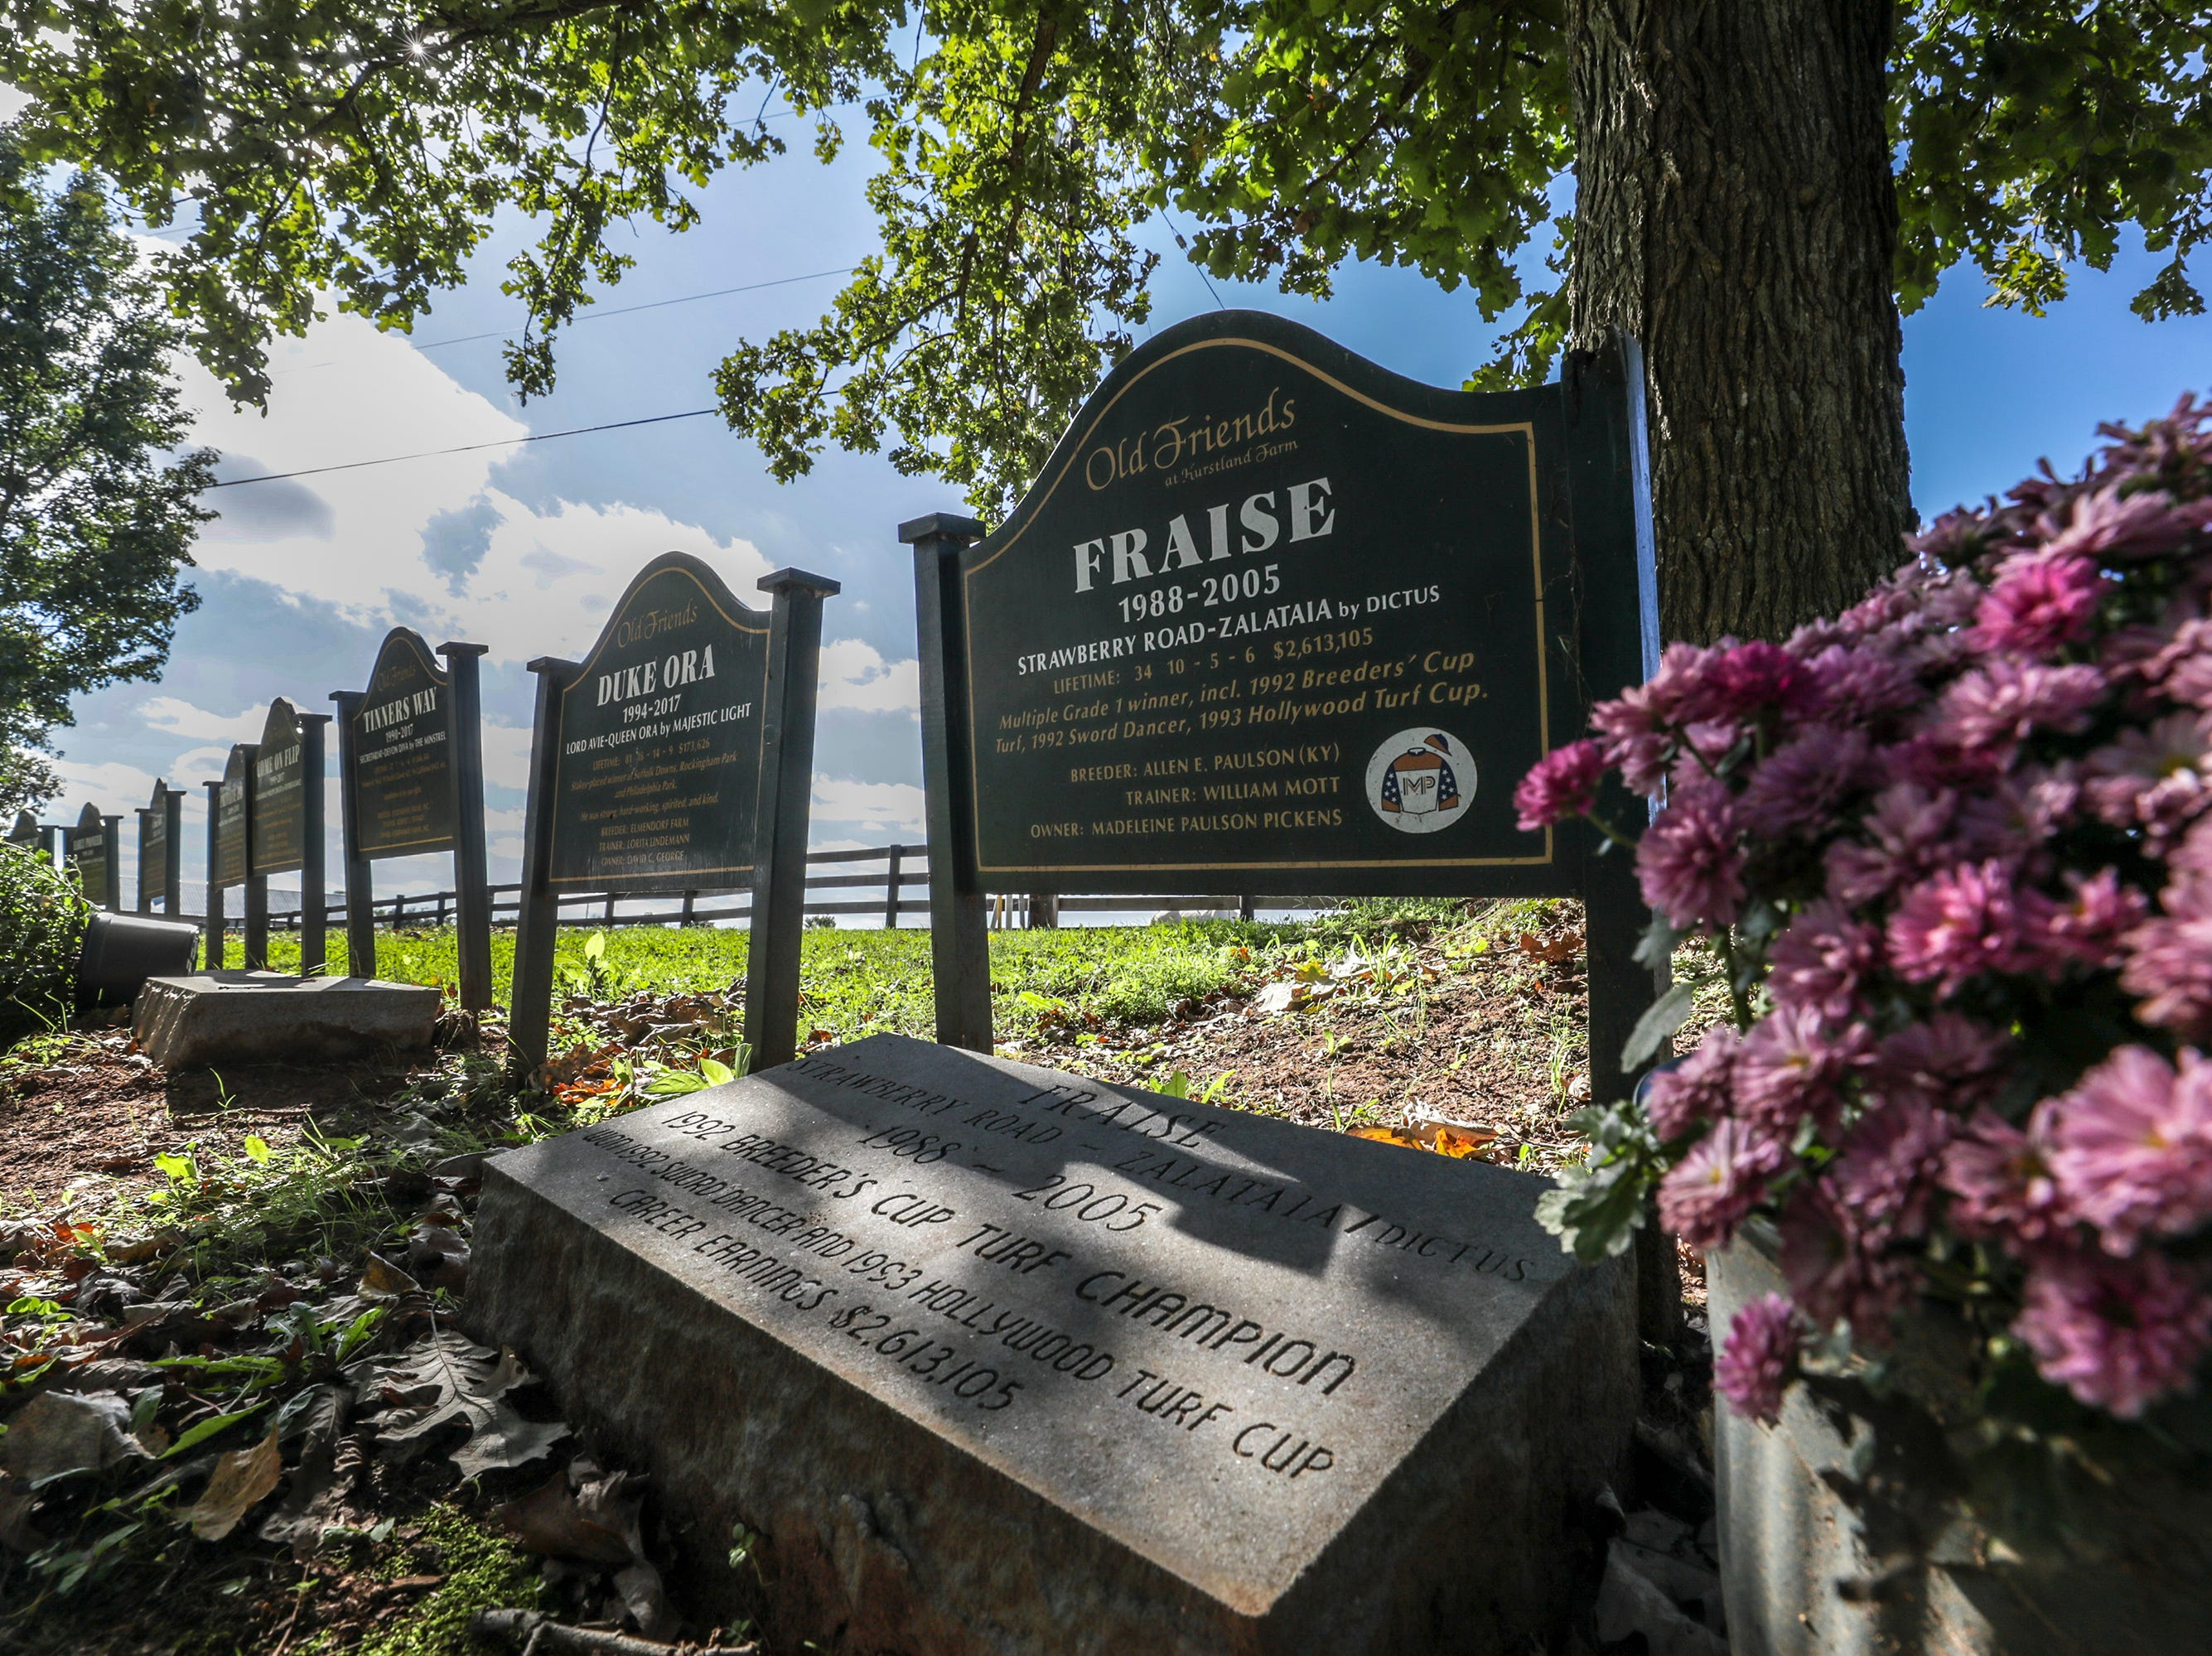 Old Friends Farm graveyard in Georgetown where many Breeders Cup champions are buried.October 10, 2018